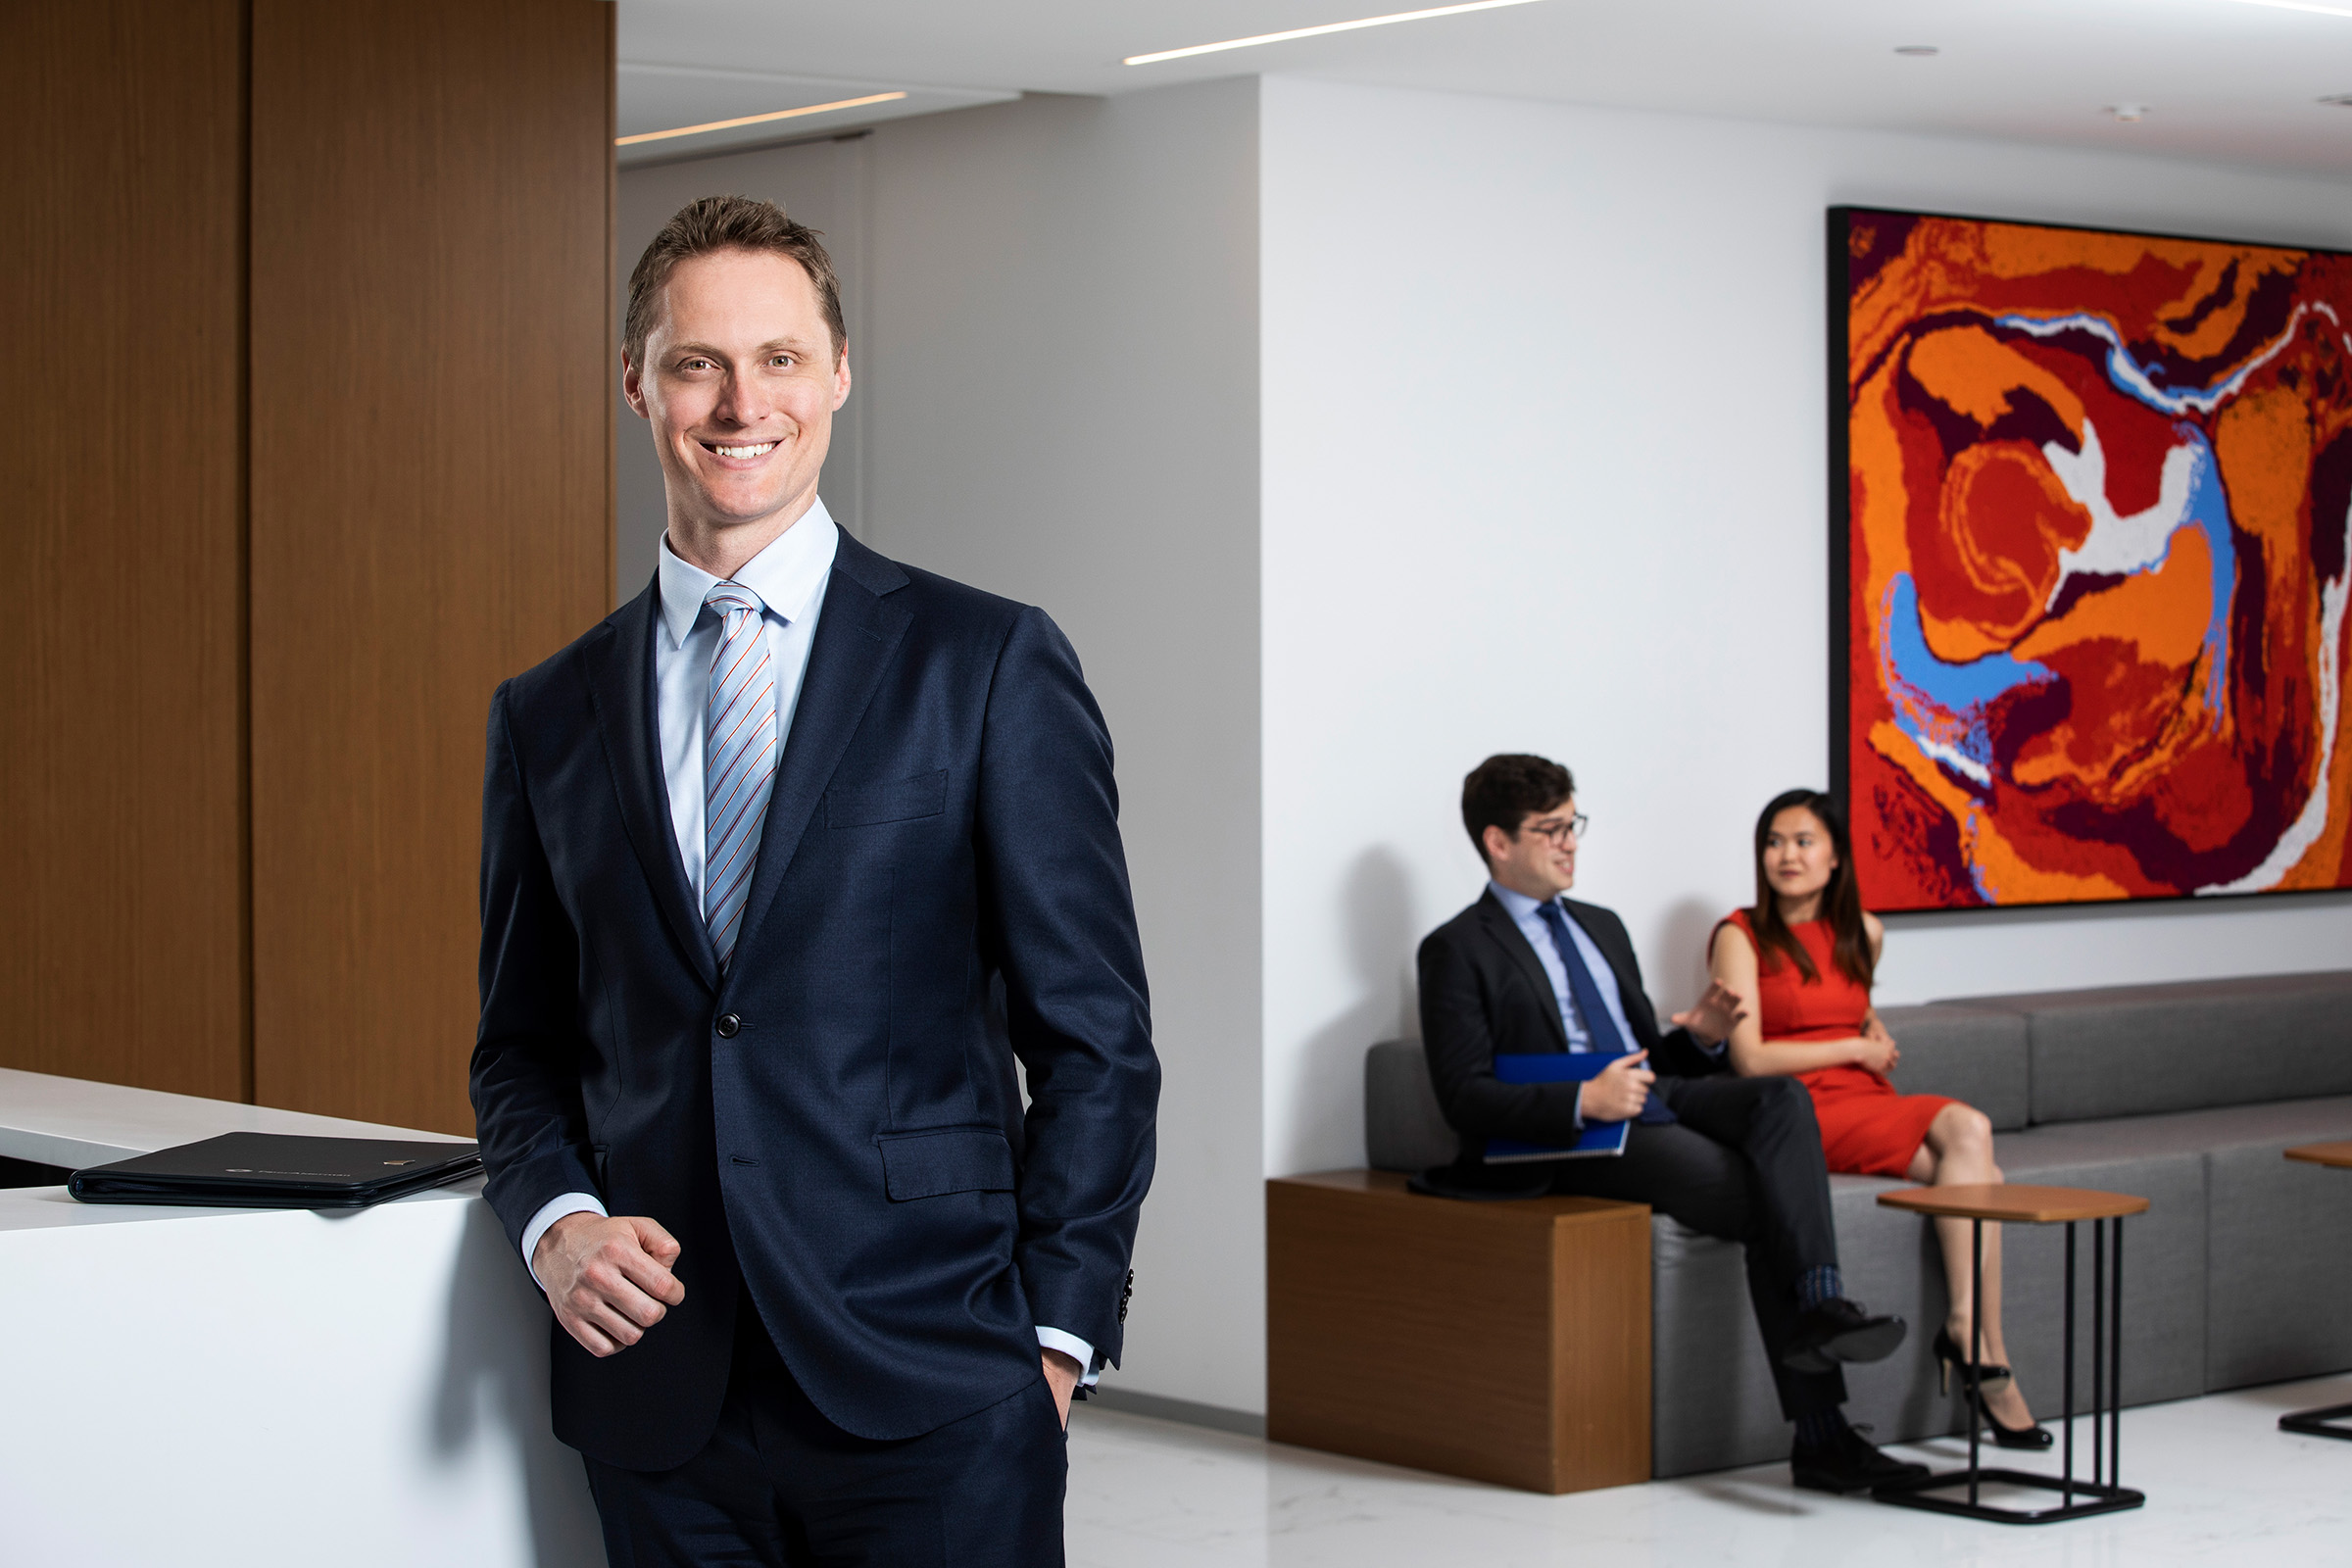 man standing and man and woman sitting in office reception area